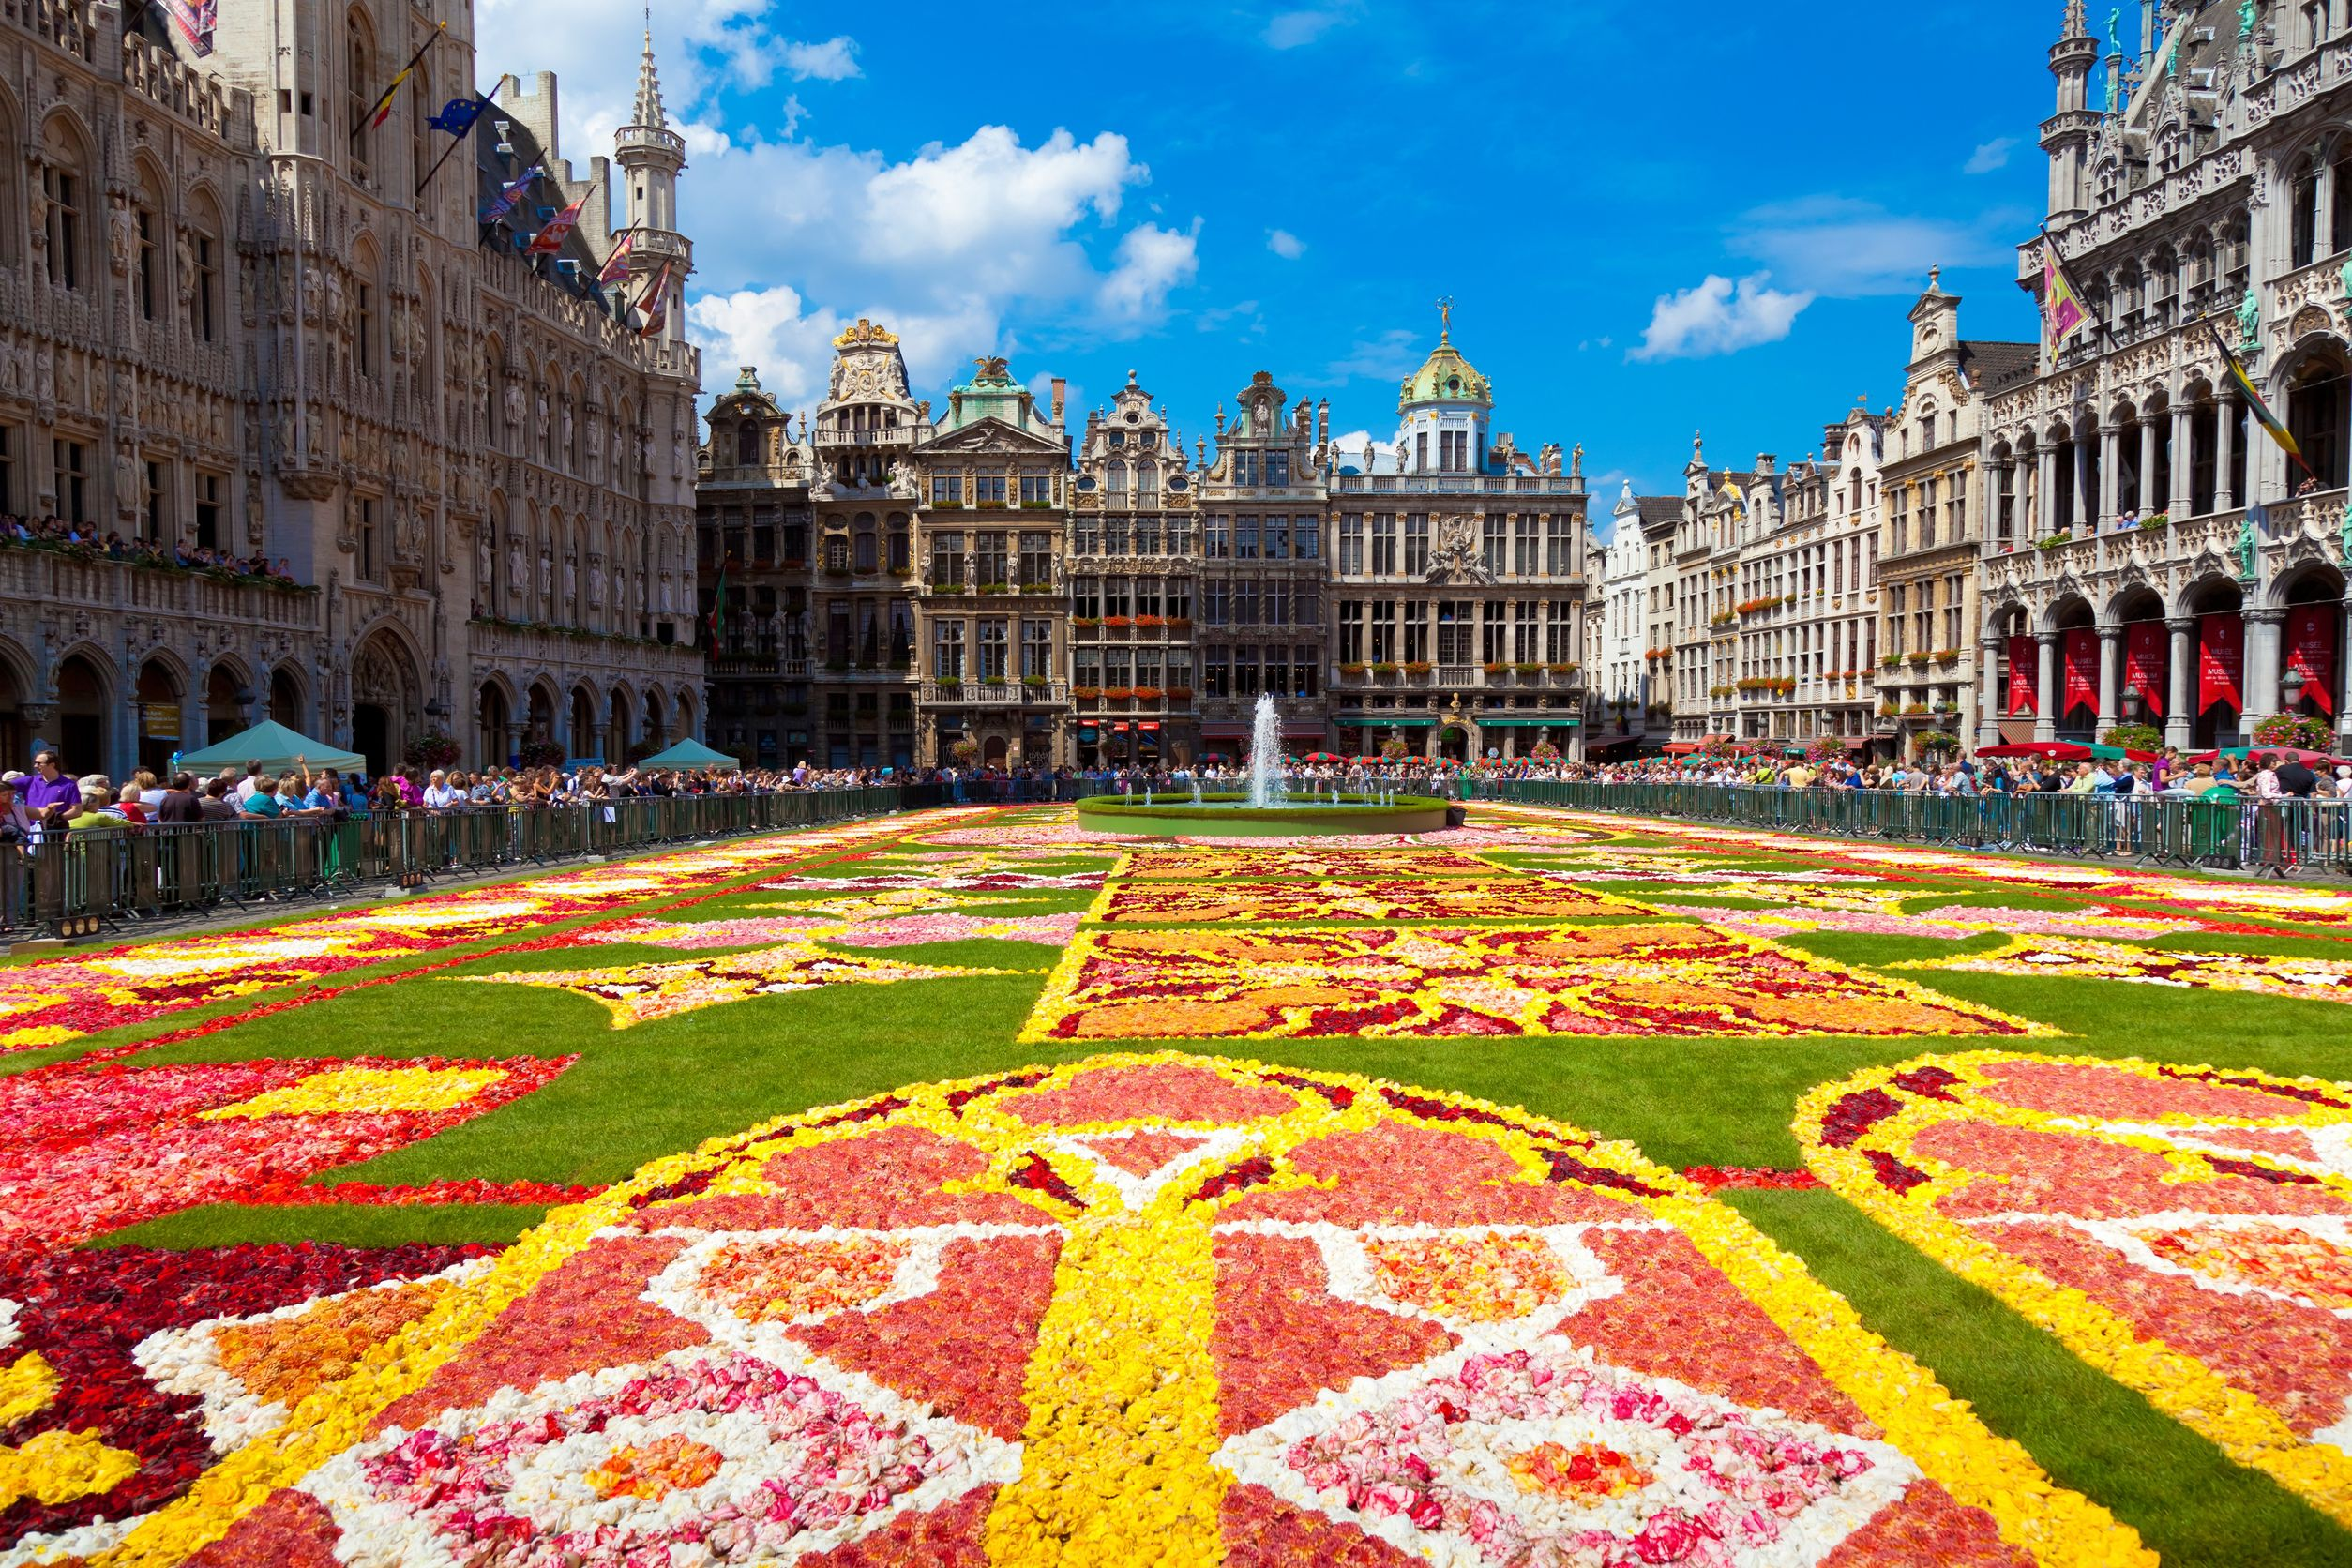 Flower Decorated Square in Belgium